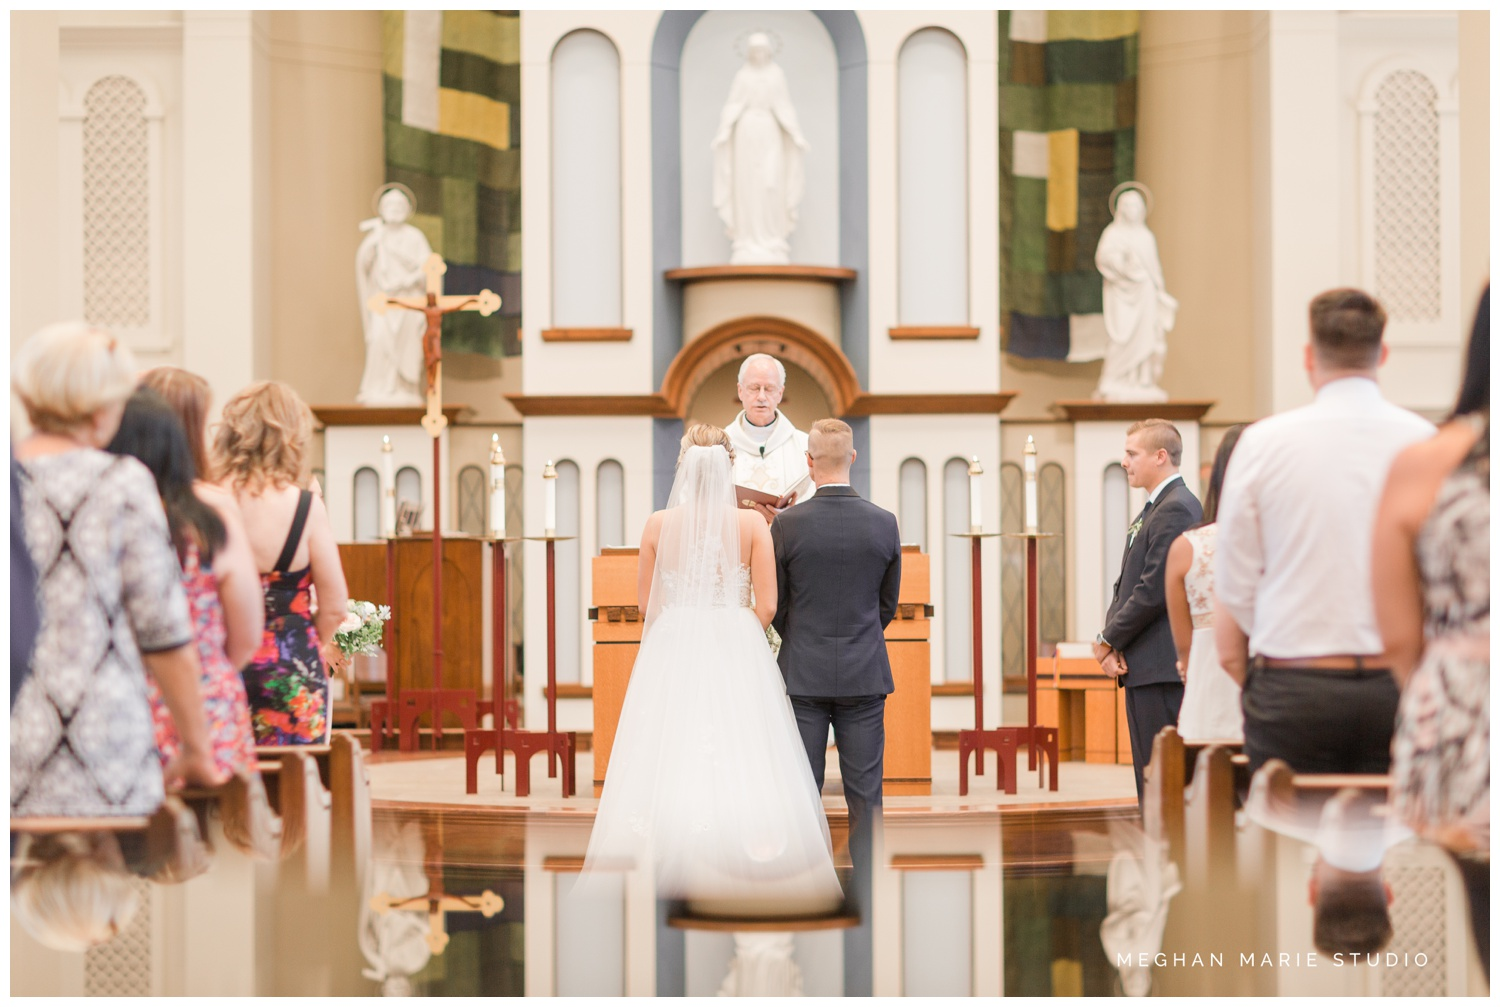 meghan marie studio university of dayton cathedral wedding with romantic earth tone donuts and decor steam plant ohio wedding_0307.jpg